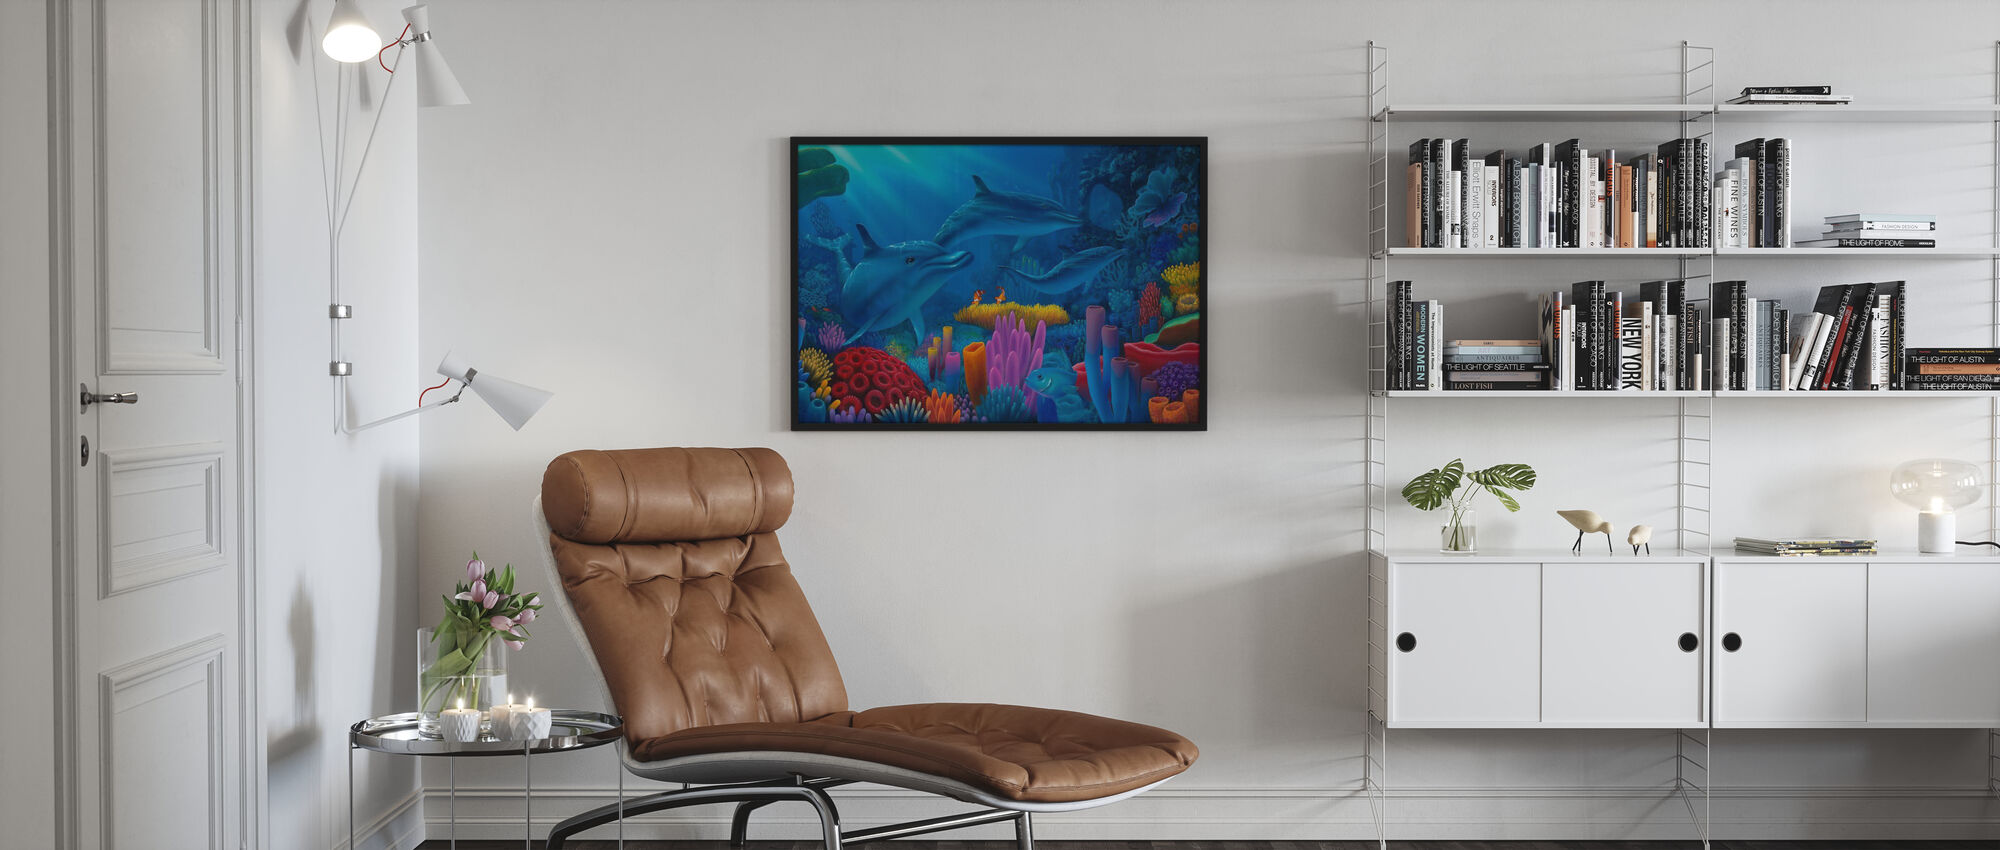 Secrets of the Sea - Poster - Living Room